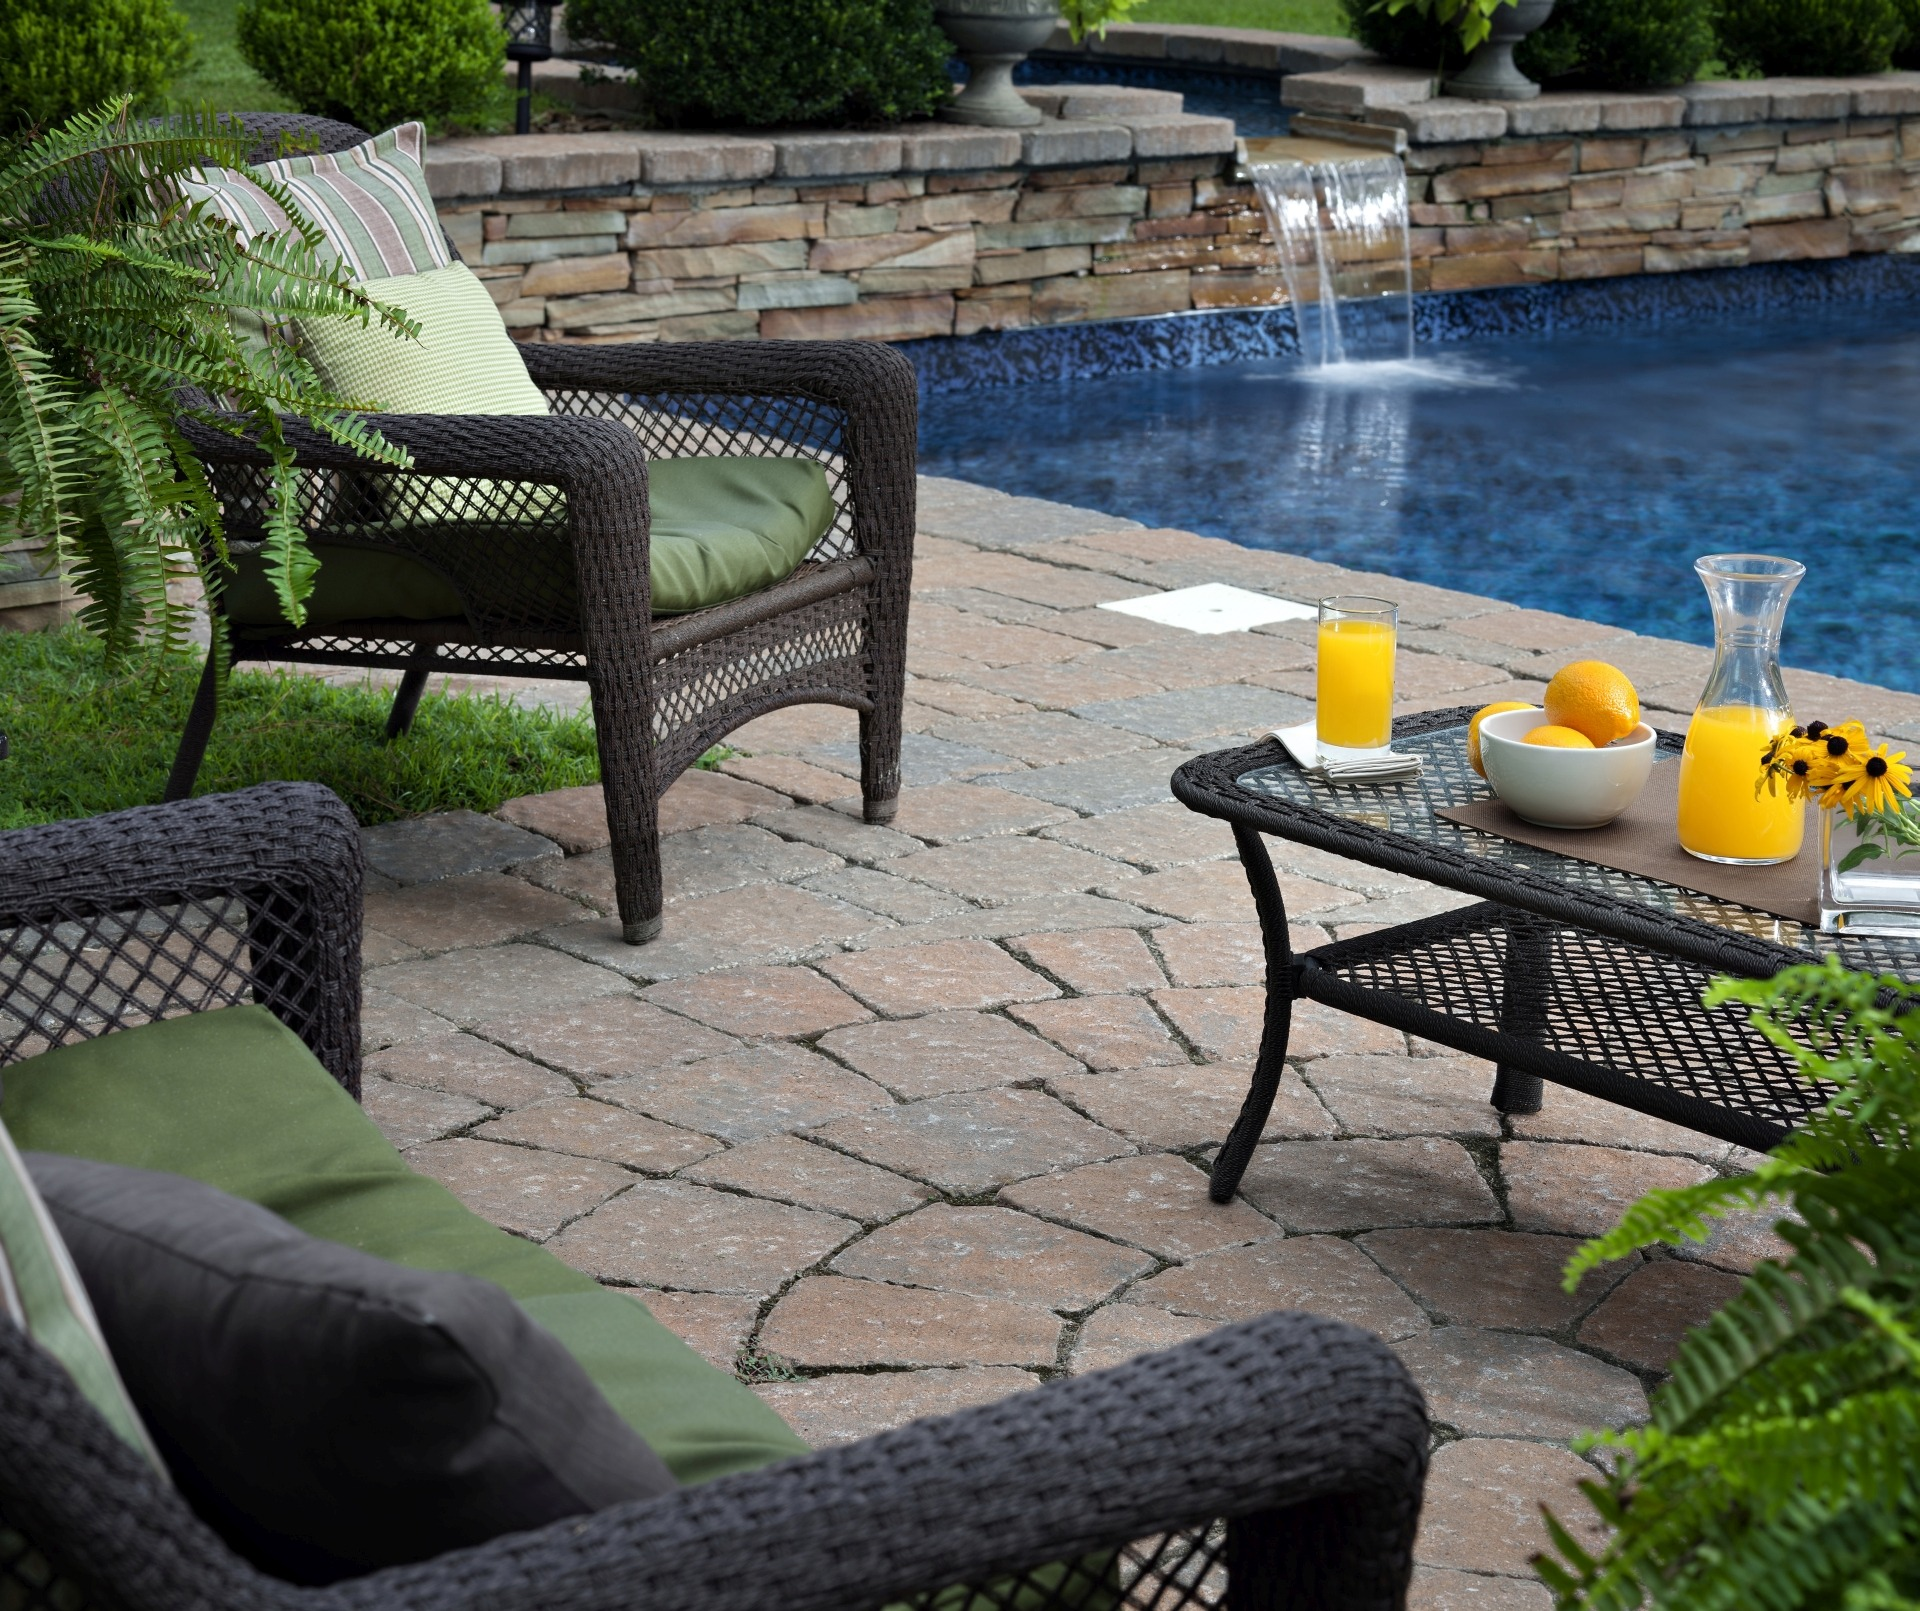 Patio pavers accessories the top 7 patio must haves for Garden pool accessories